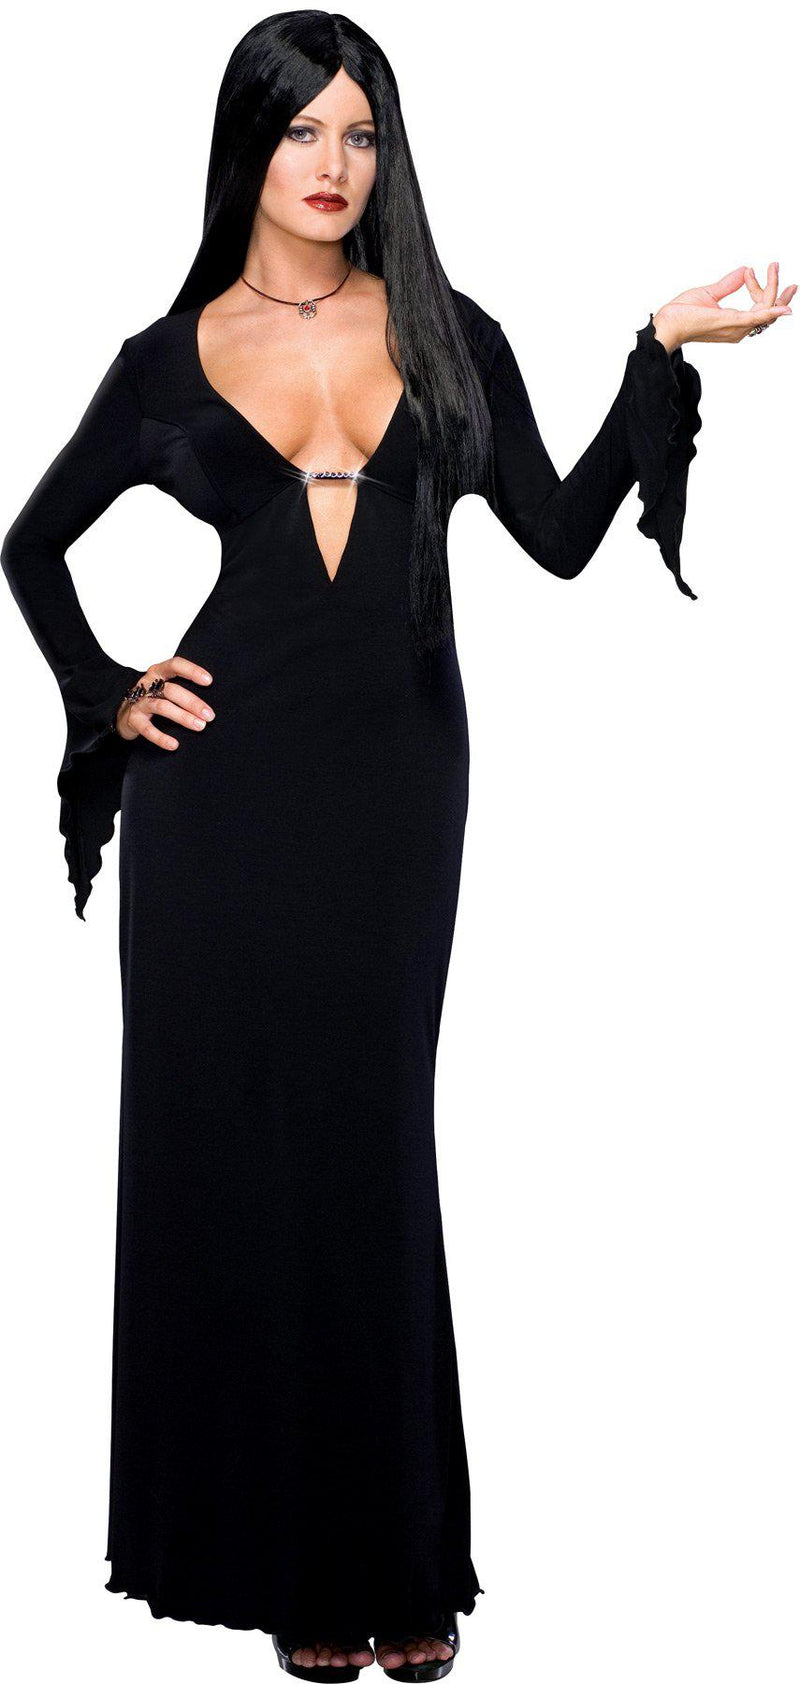 THE ADDAMS FAMILY - Morticia Adult V Neckline Costume-Costume-1-Classic Horror Shop